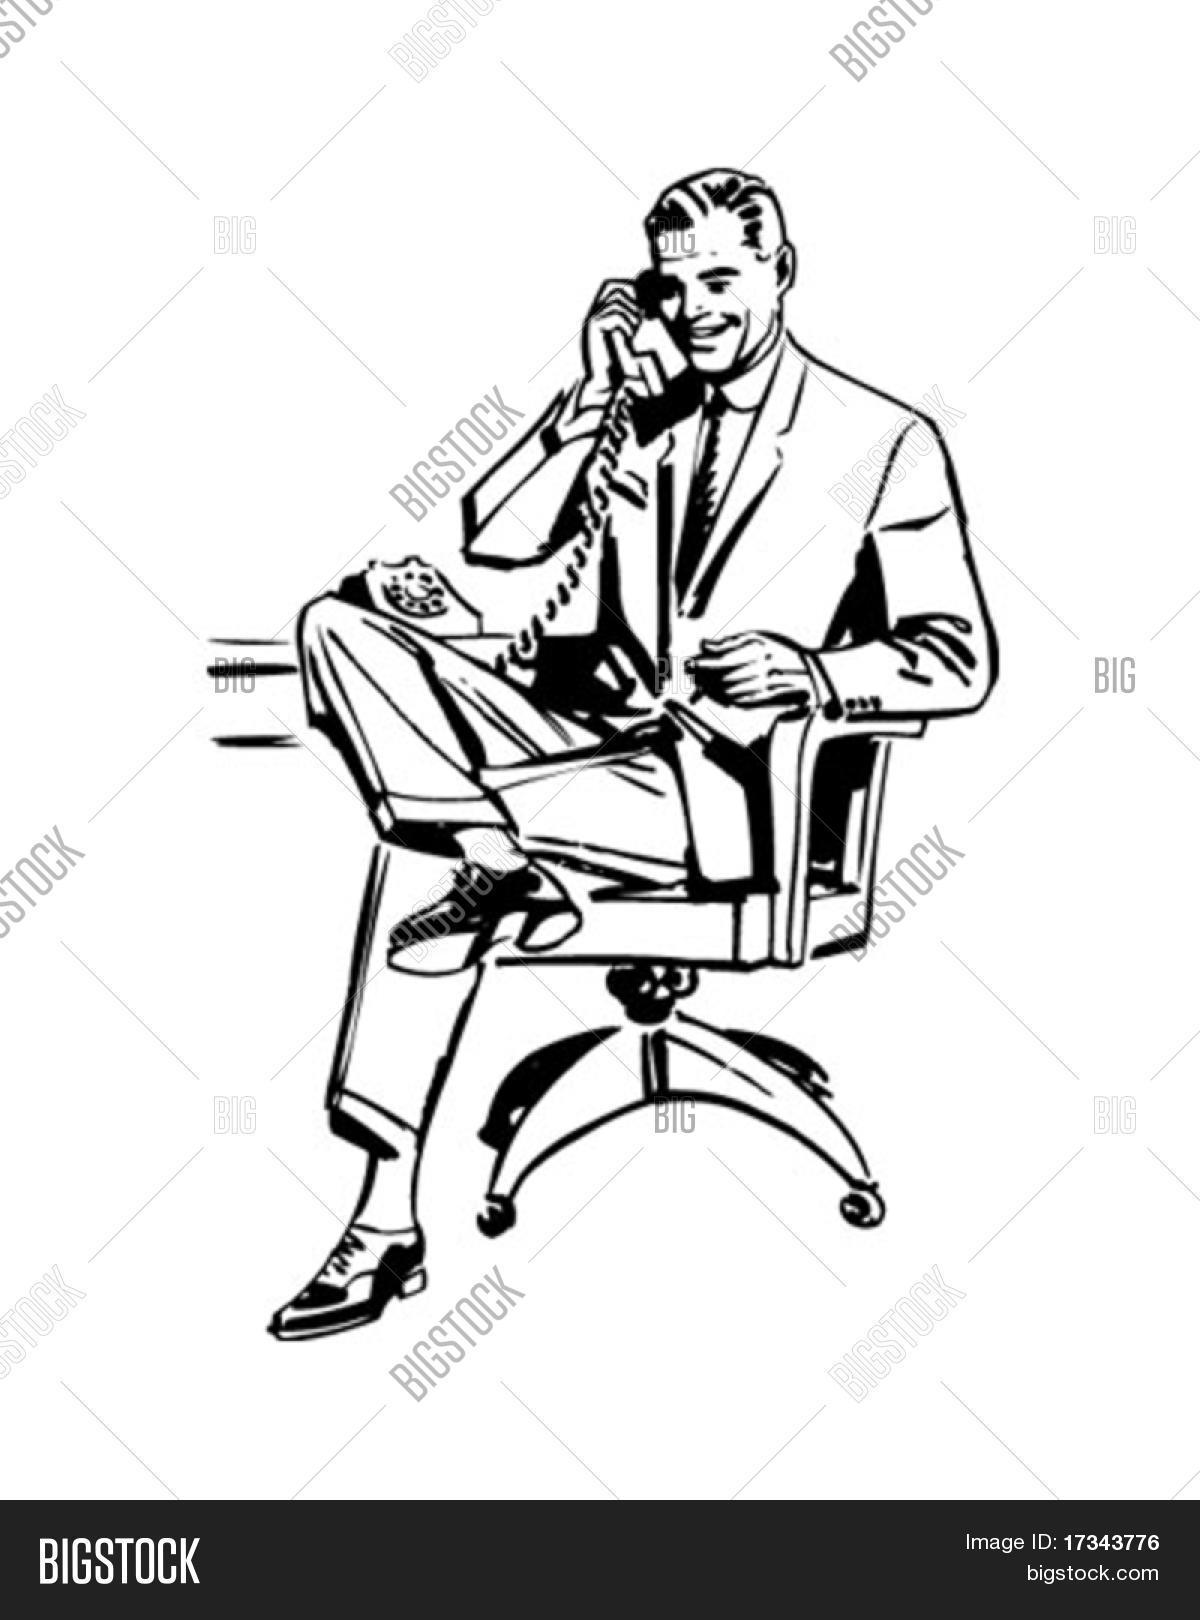 Man In Office Chair.